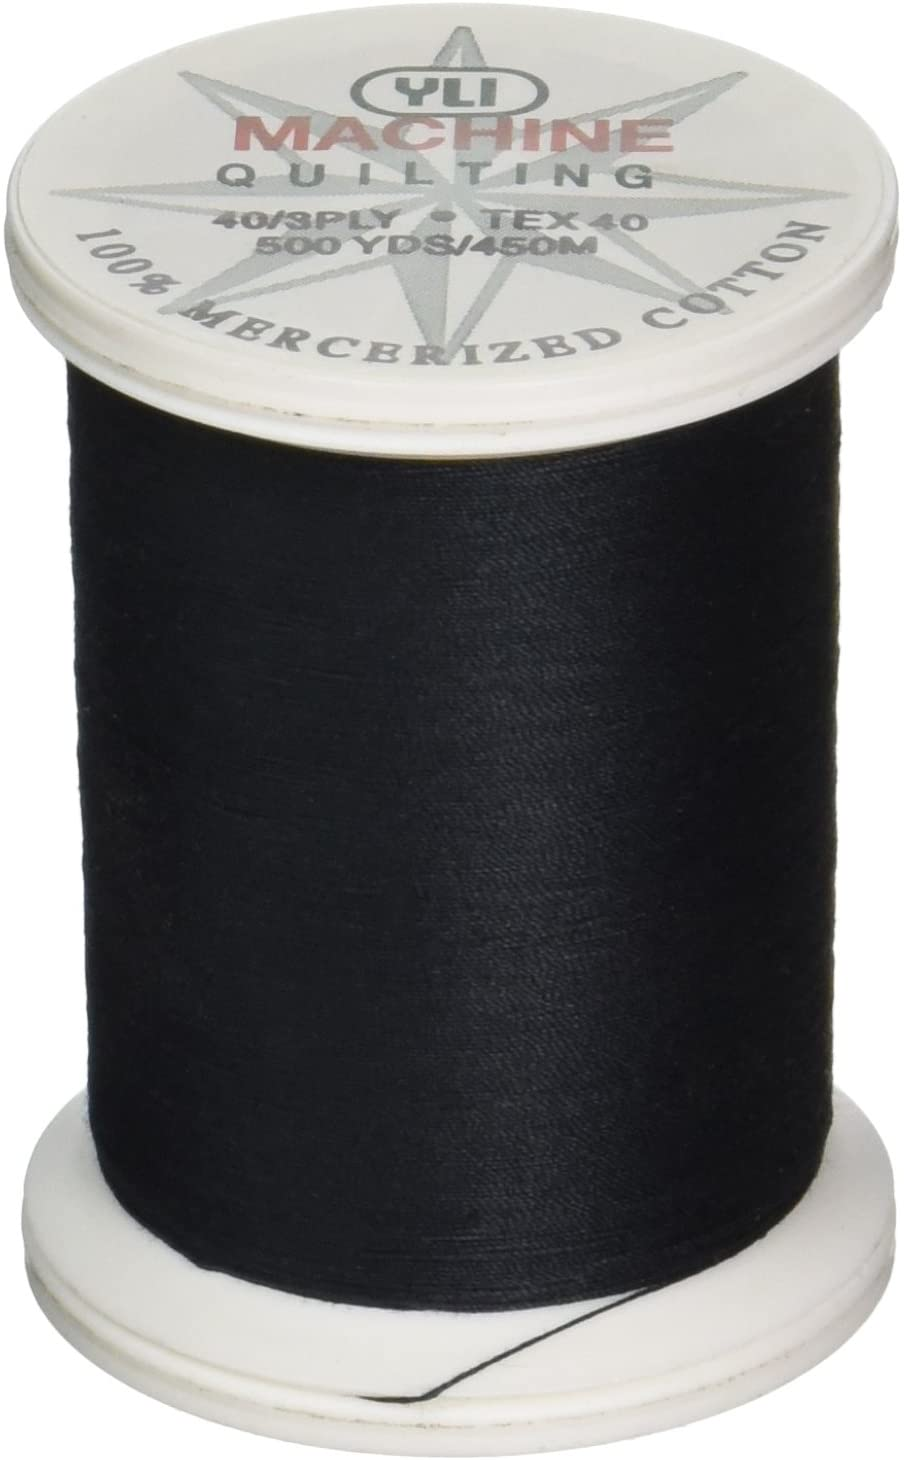 YLI 24450-BLK 3-Ply 40wt T-40 Cotton Quilting Variegated Thread, 500 yd, Black